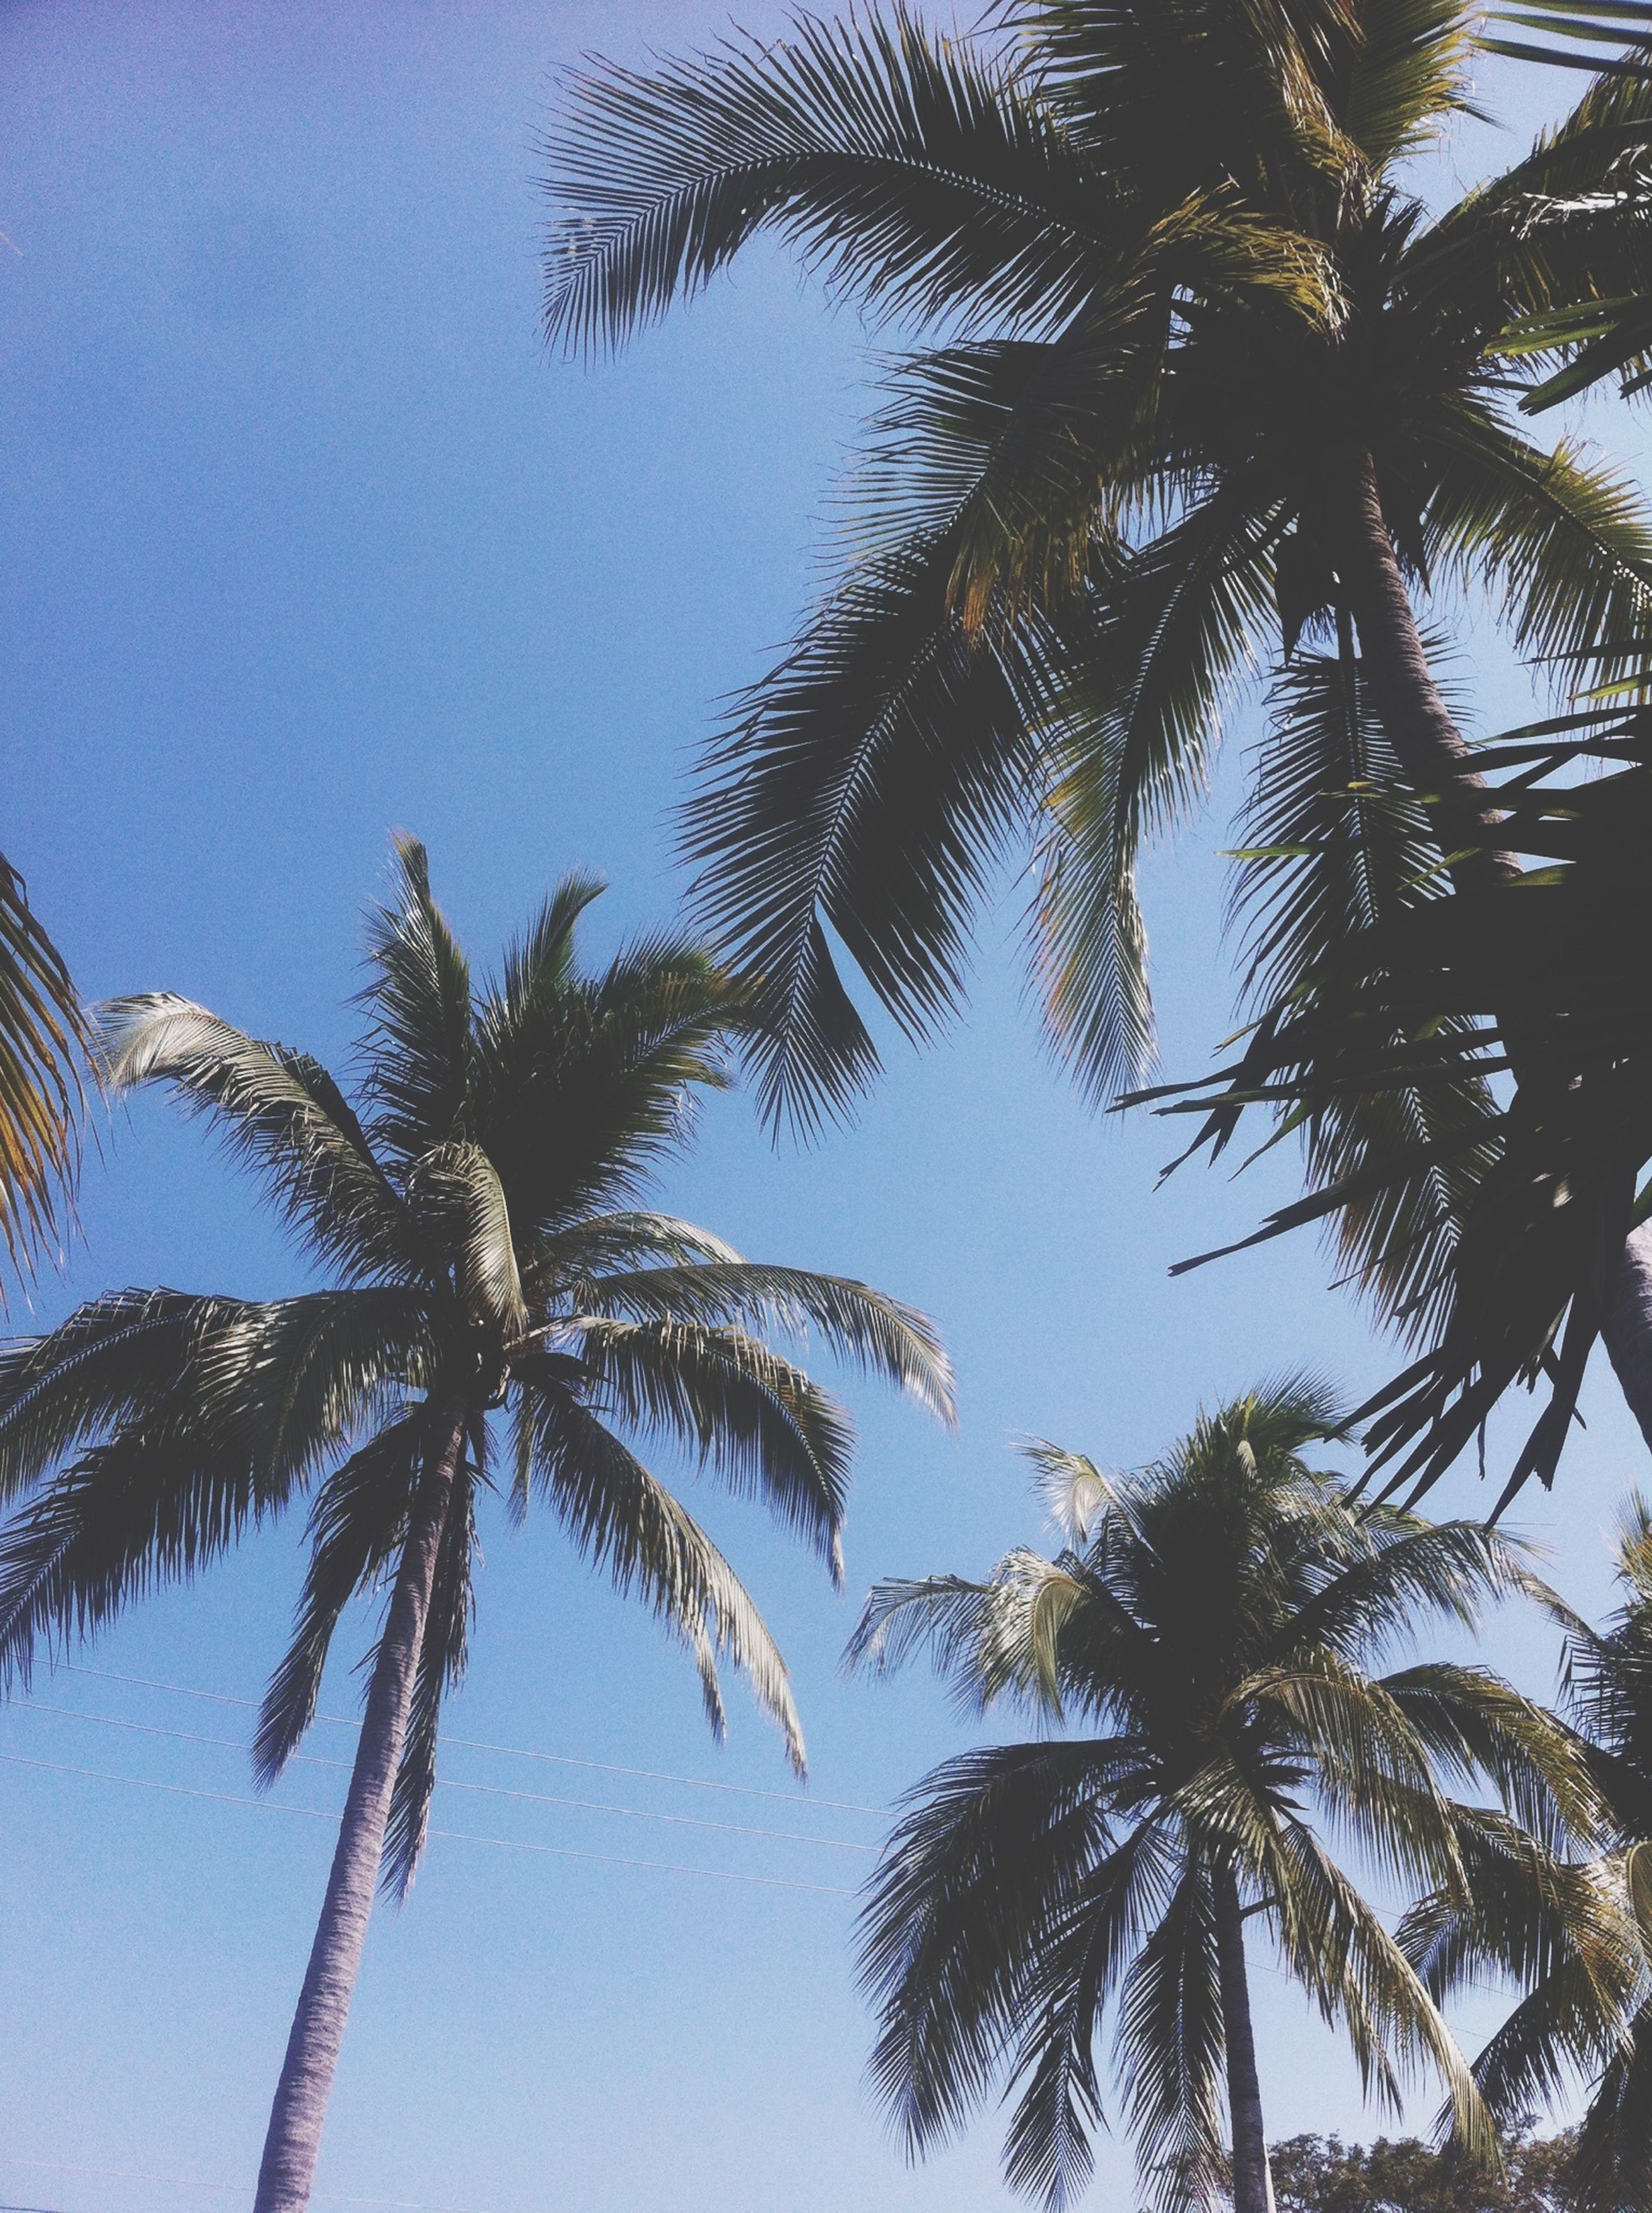 low angle view, palm tree, tree, growth, clear sky, branch, blue, nature, tree trunk, sky, tall - high, beauty in nature, tranquility, palm leaf, leaf, day, high section, outdoors, coconut palm tree, no people